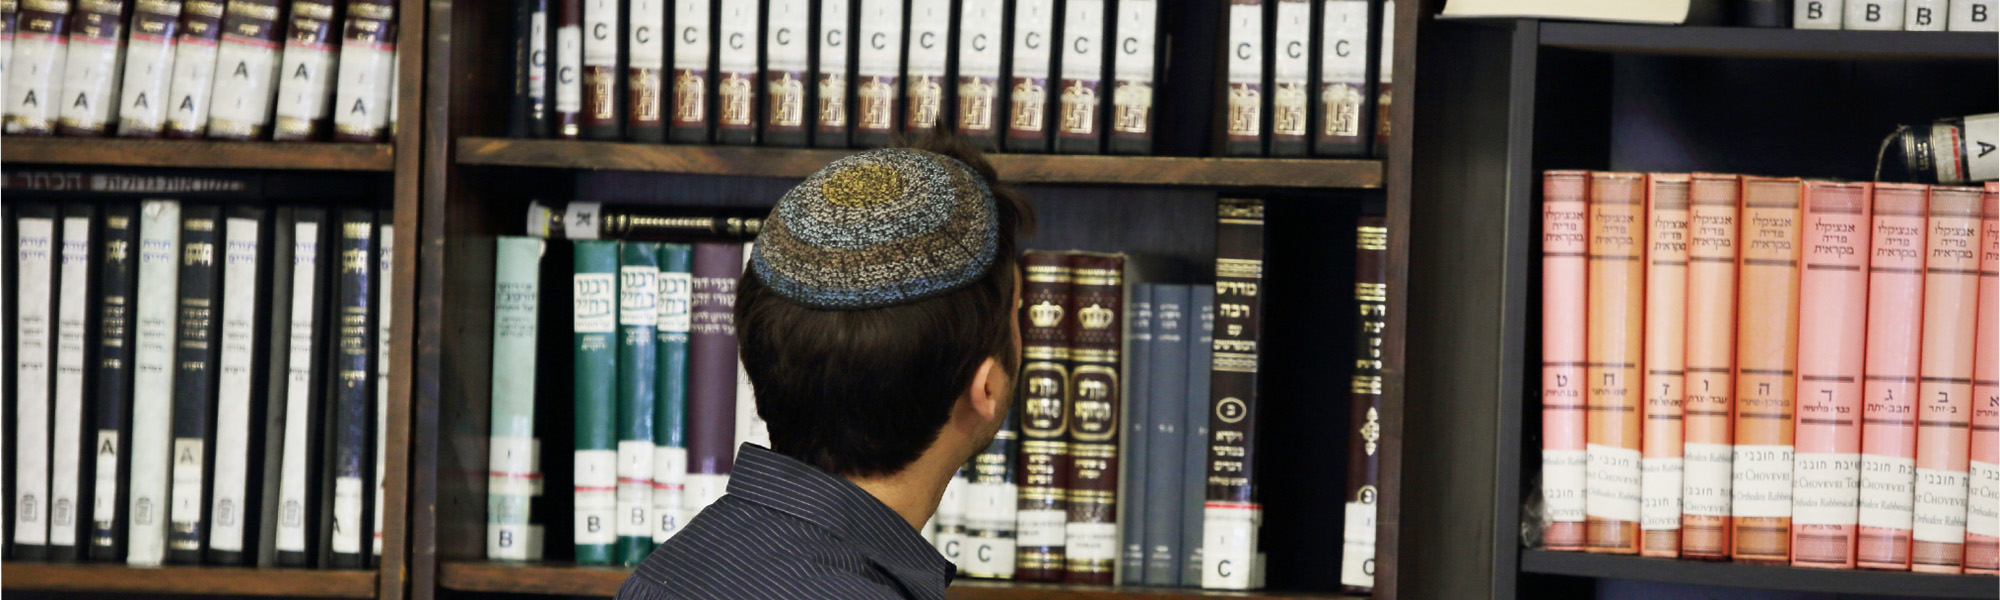 Tuition & Fellowships - Yeshivat Chovevei Torah, Setting the standard in rabbinic education